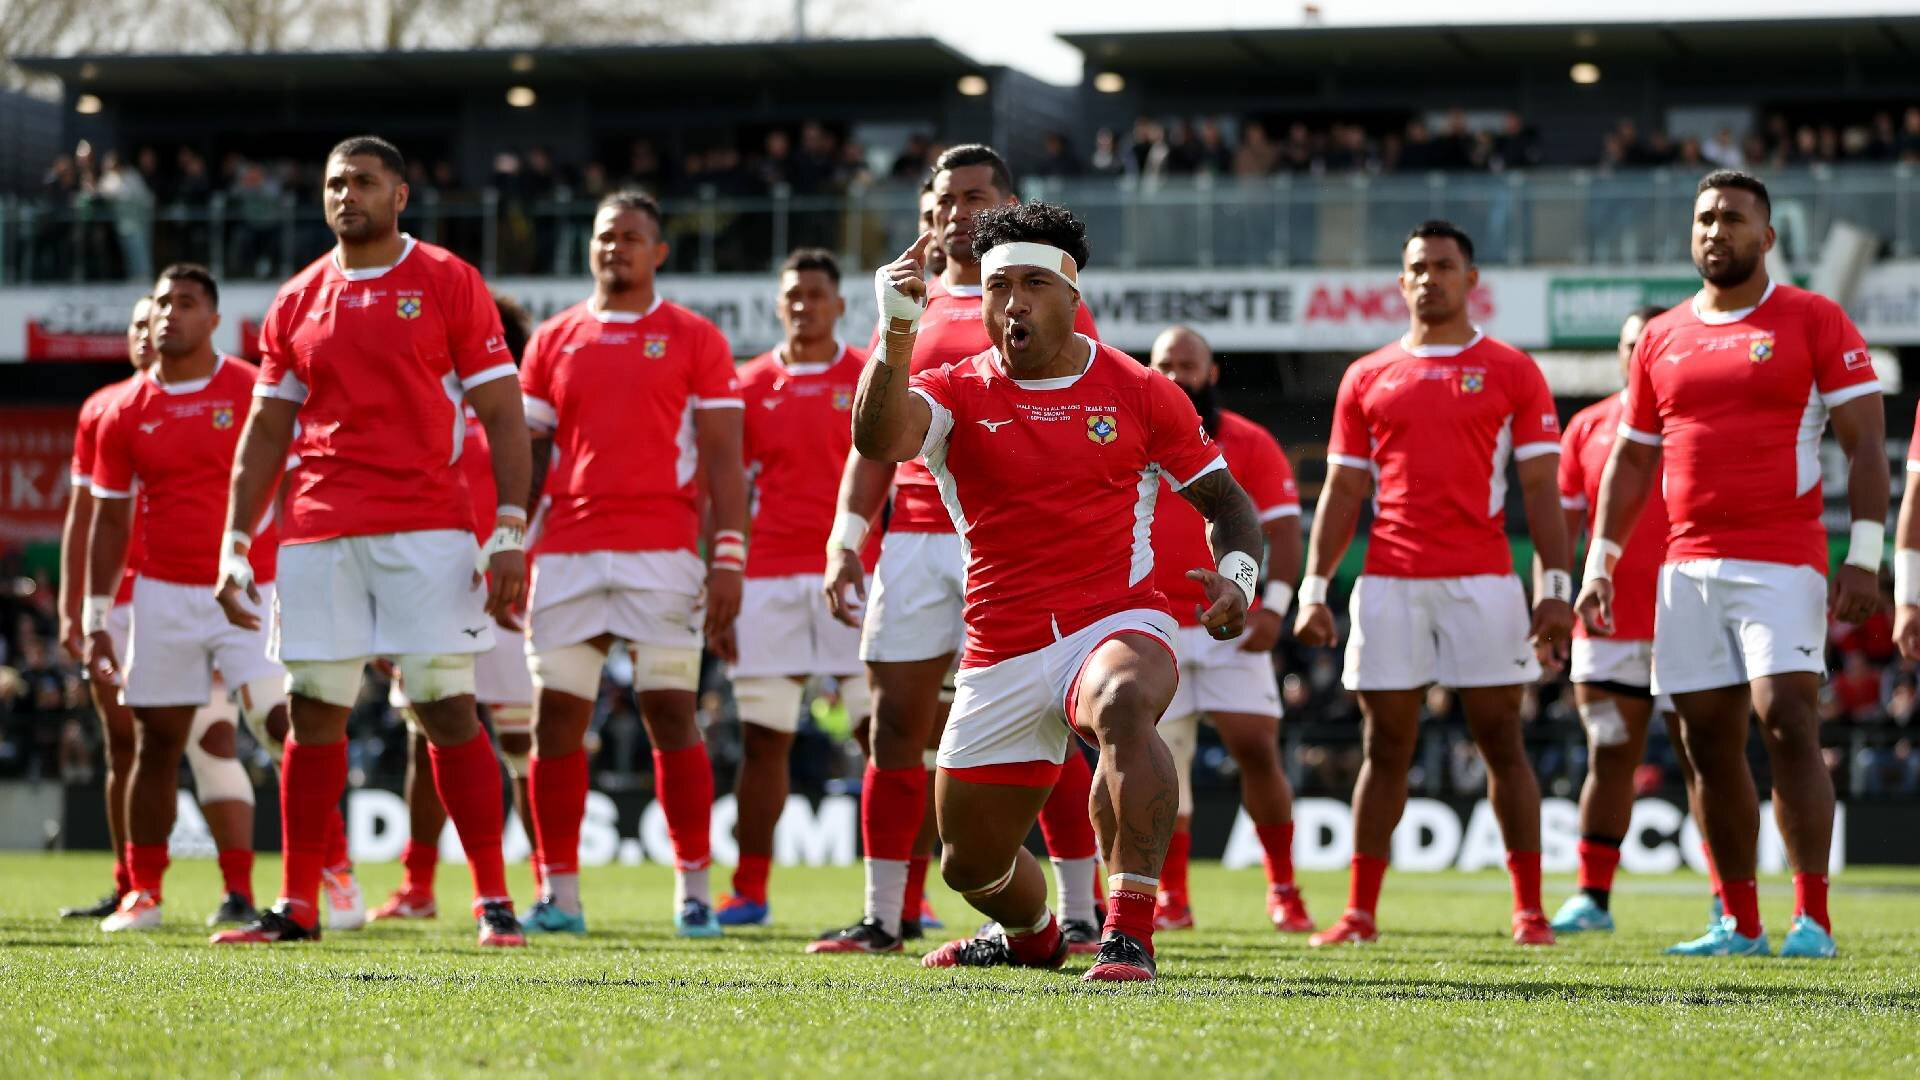 Everyone wants to see a Pasifika Super franchise but expecting NZR to bankroll it in these times is a stretch too far